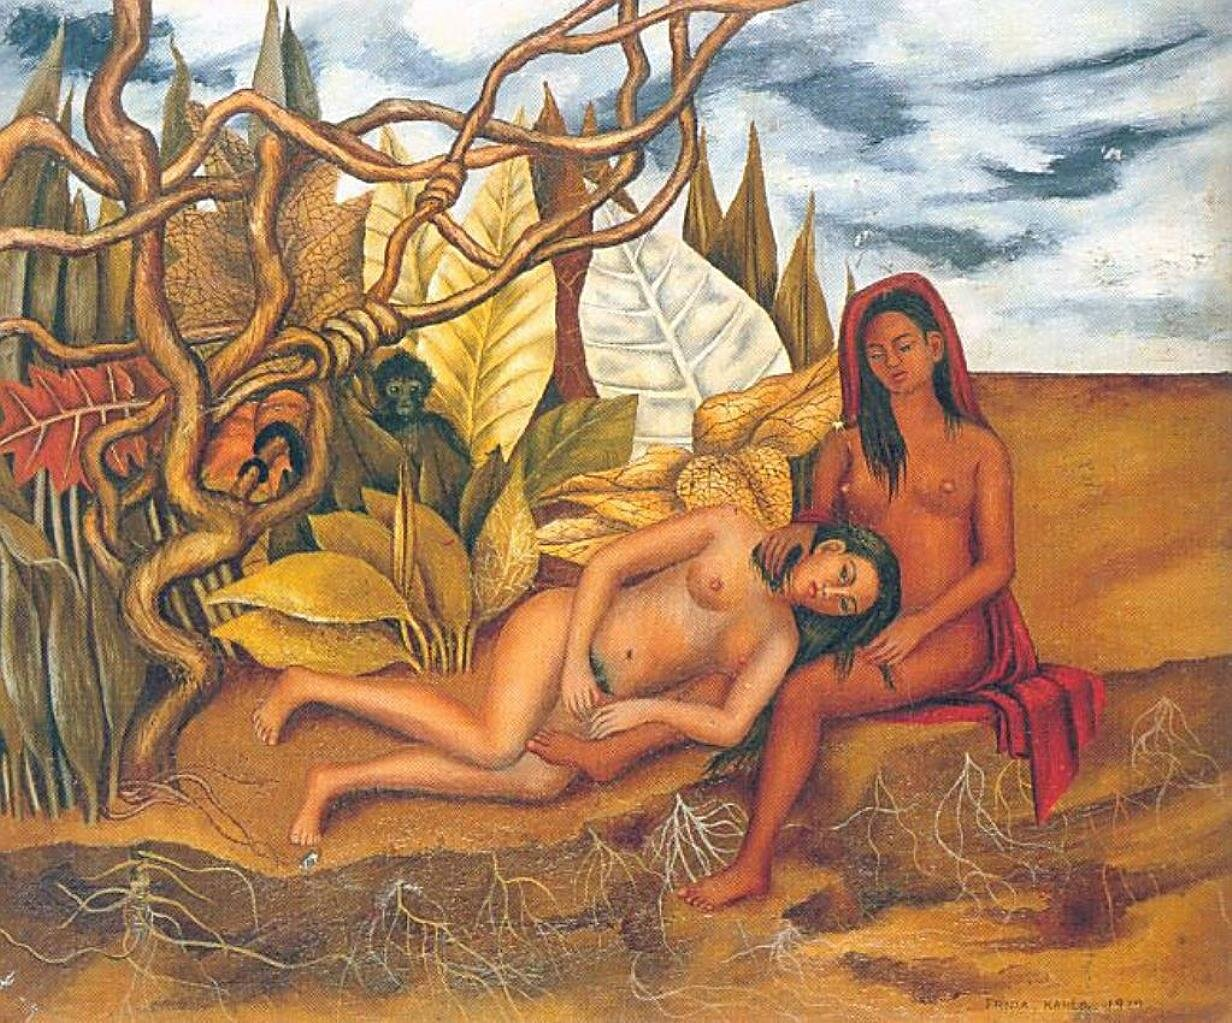 Две обнажённые в лесу. (Моя медсестра и я.) 1939  Two Nudes in the Forest. Кало Фрида,  (1907-1954);Кало Фрида,  (1907-1954)